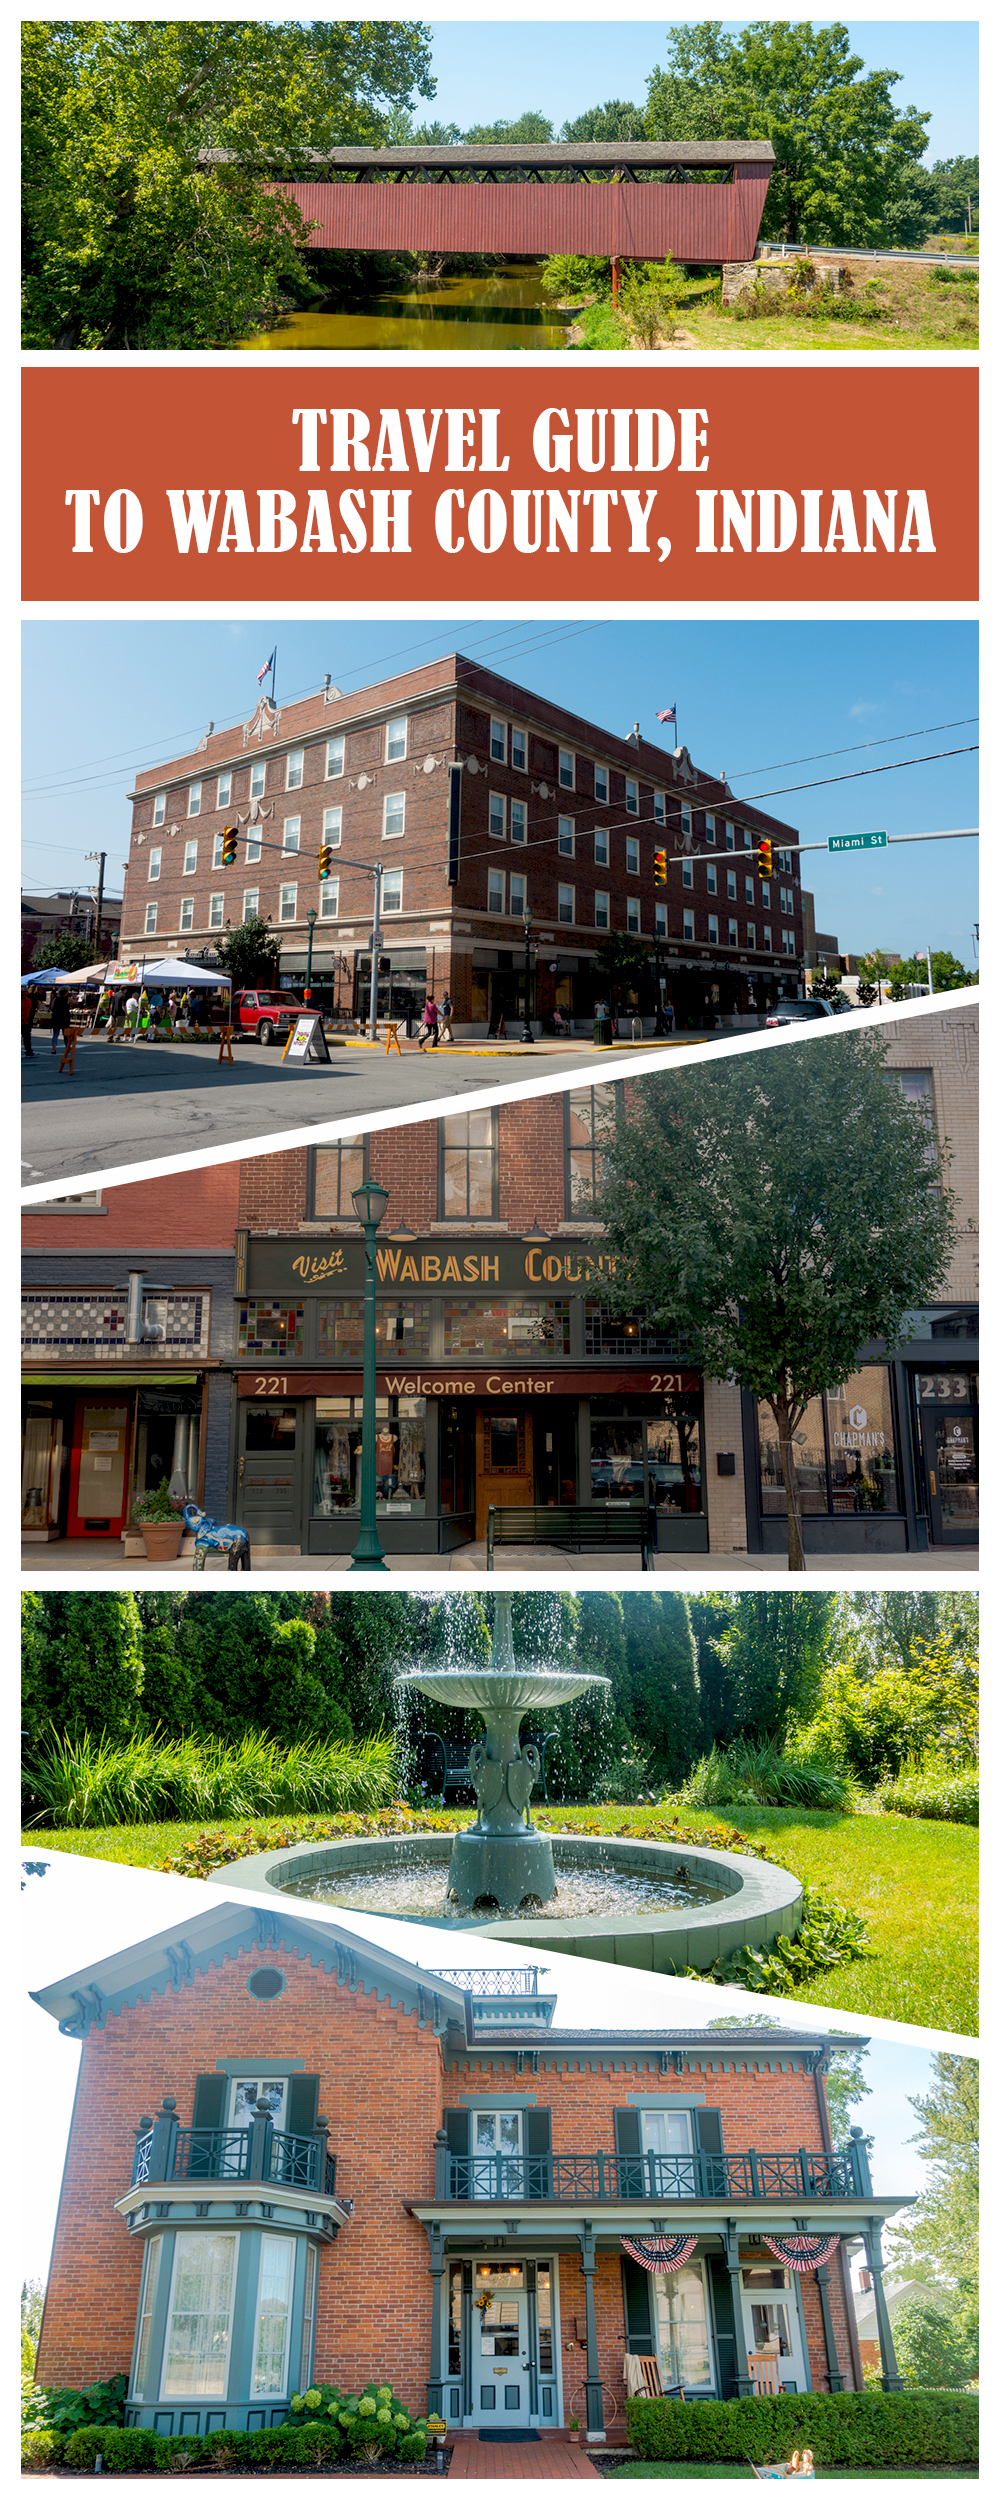 Wabash, Indiana is located in central Indiana, making it a great Midwest weekend getaway. Whether you are planning a romantic getaway or a girls weekend, Wabash is the perfect spot!